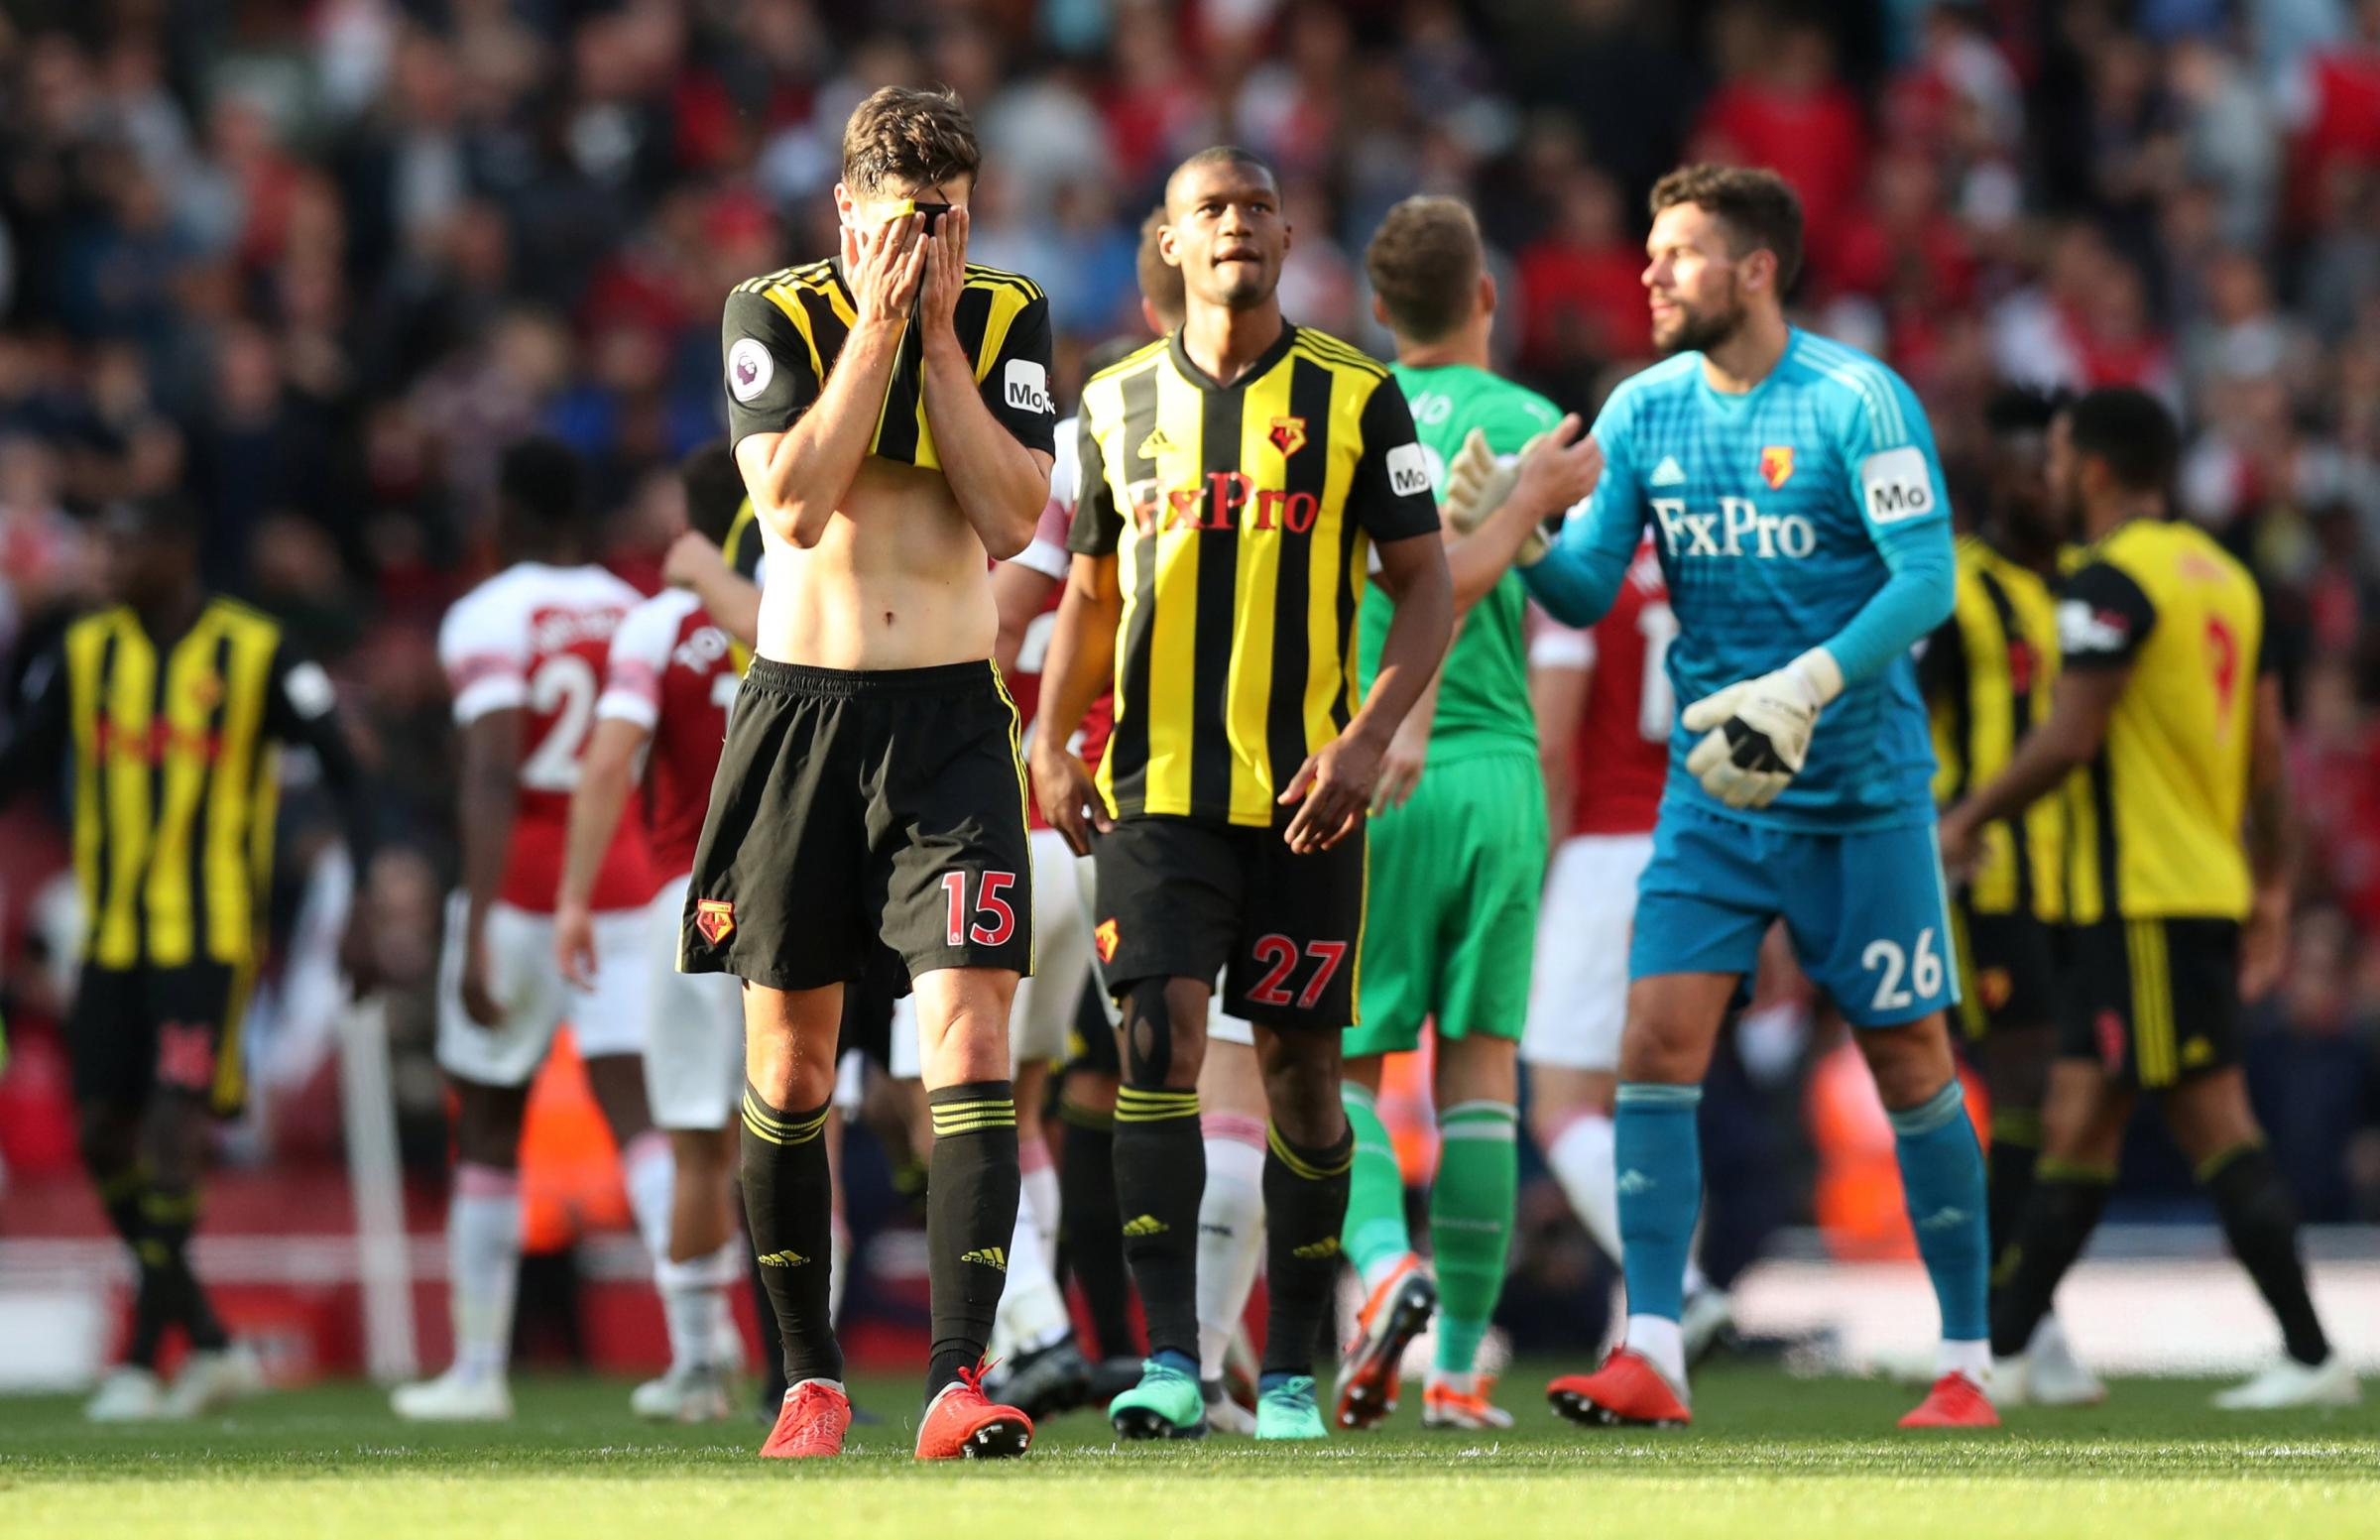 A disappointed Craig Cathcart at full-time after putting through his own net for Arsenal's first goal. Picture: Action Images.